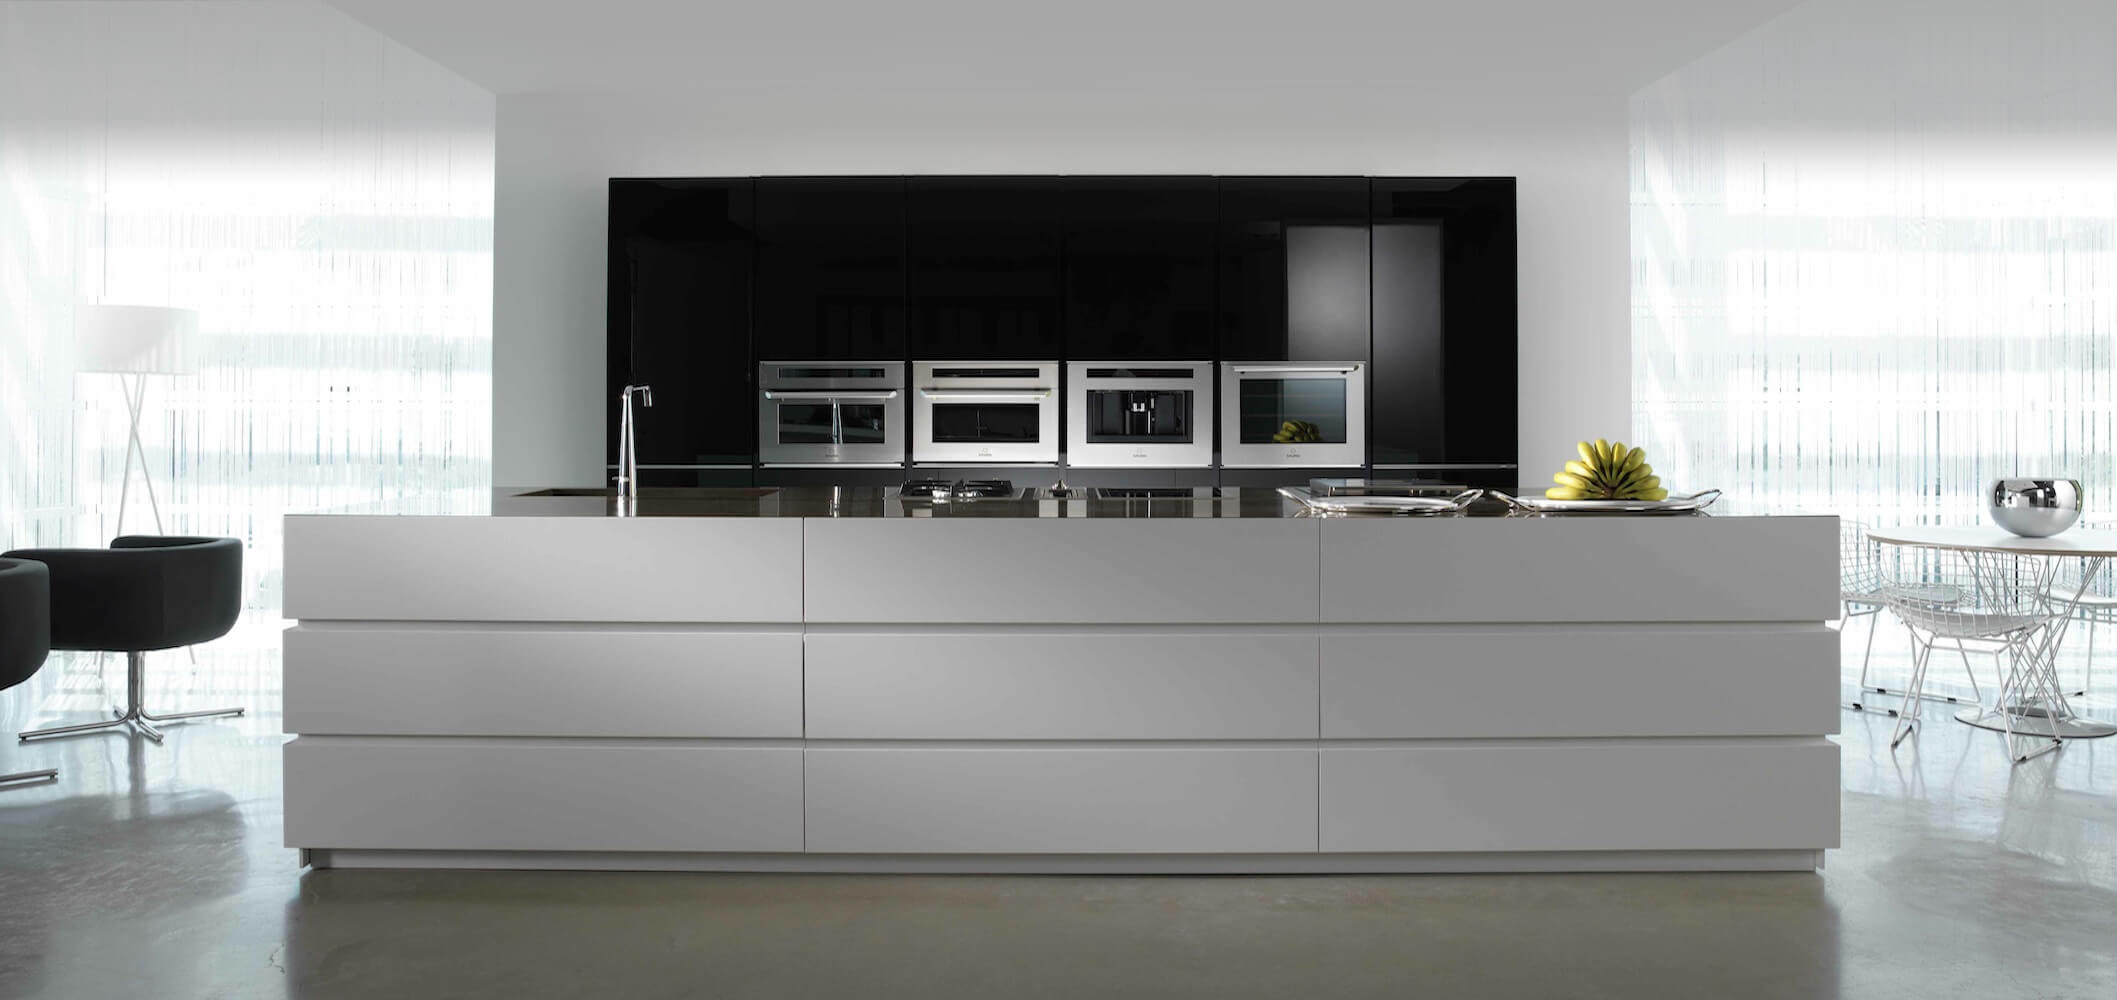 Astounding White Kitchen Cabinets Black Appliances